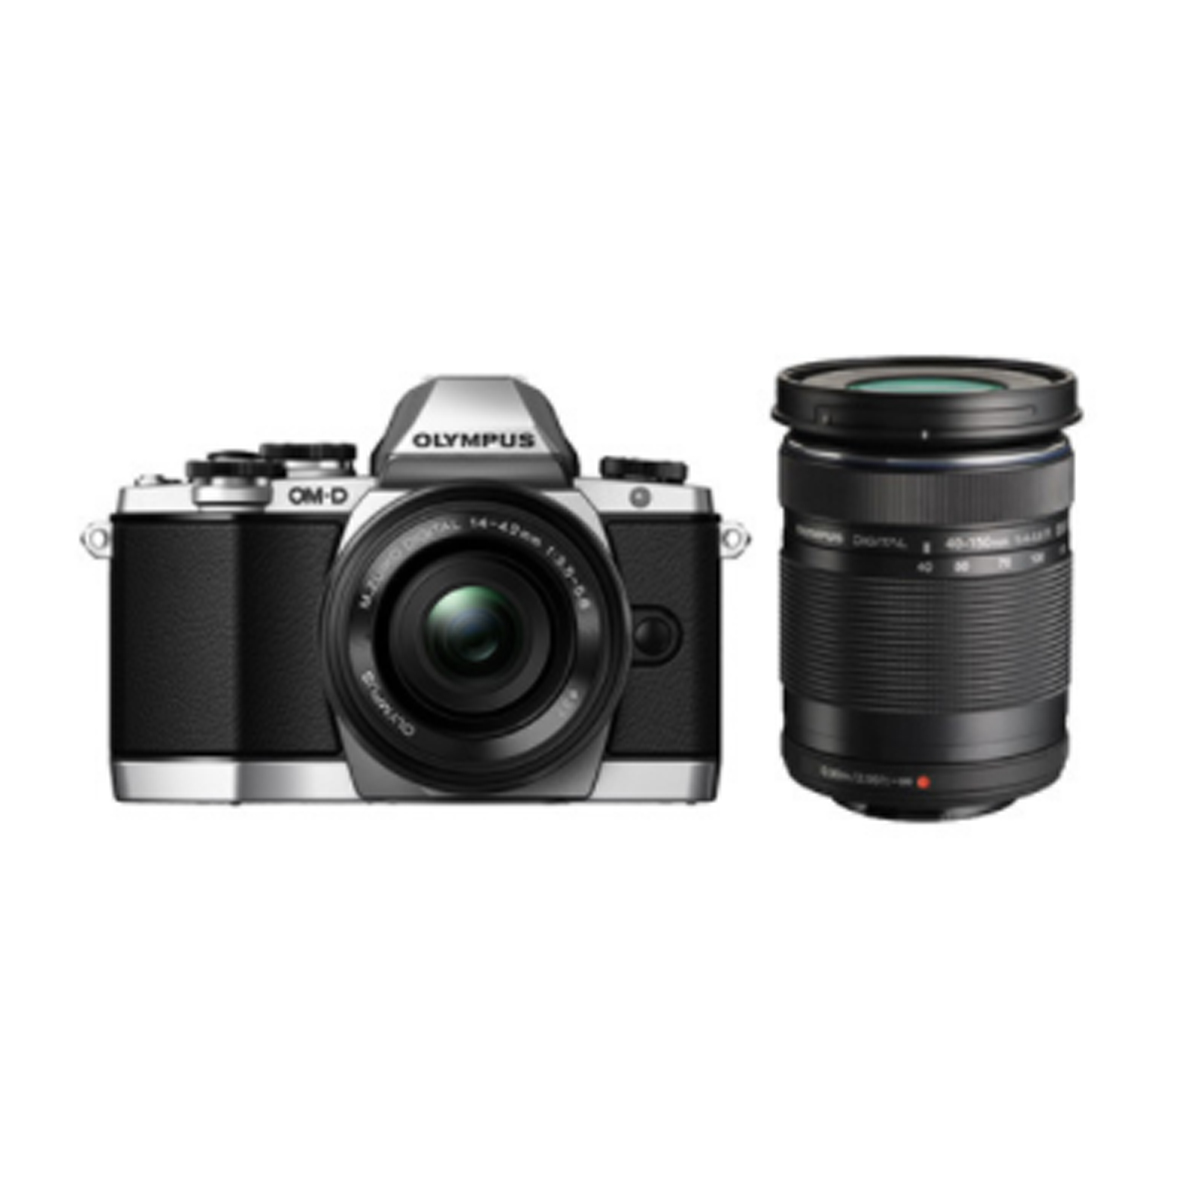 Olympus V207020SA020 OM-D E-M10 Mirrorless Camera with Double Zoom Kit (14-42mm EZ & 40-150mm Lens)